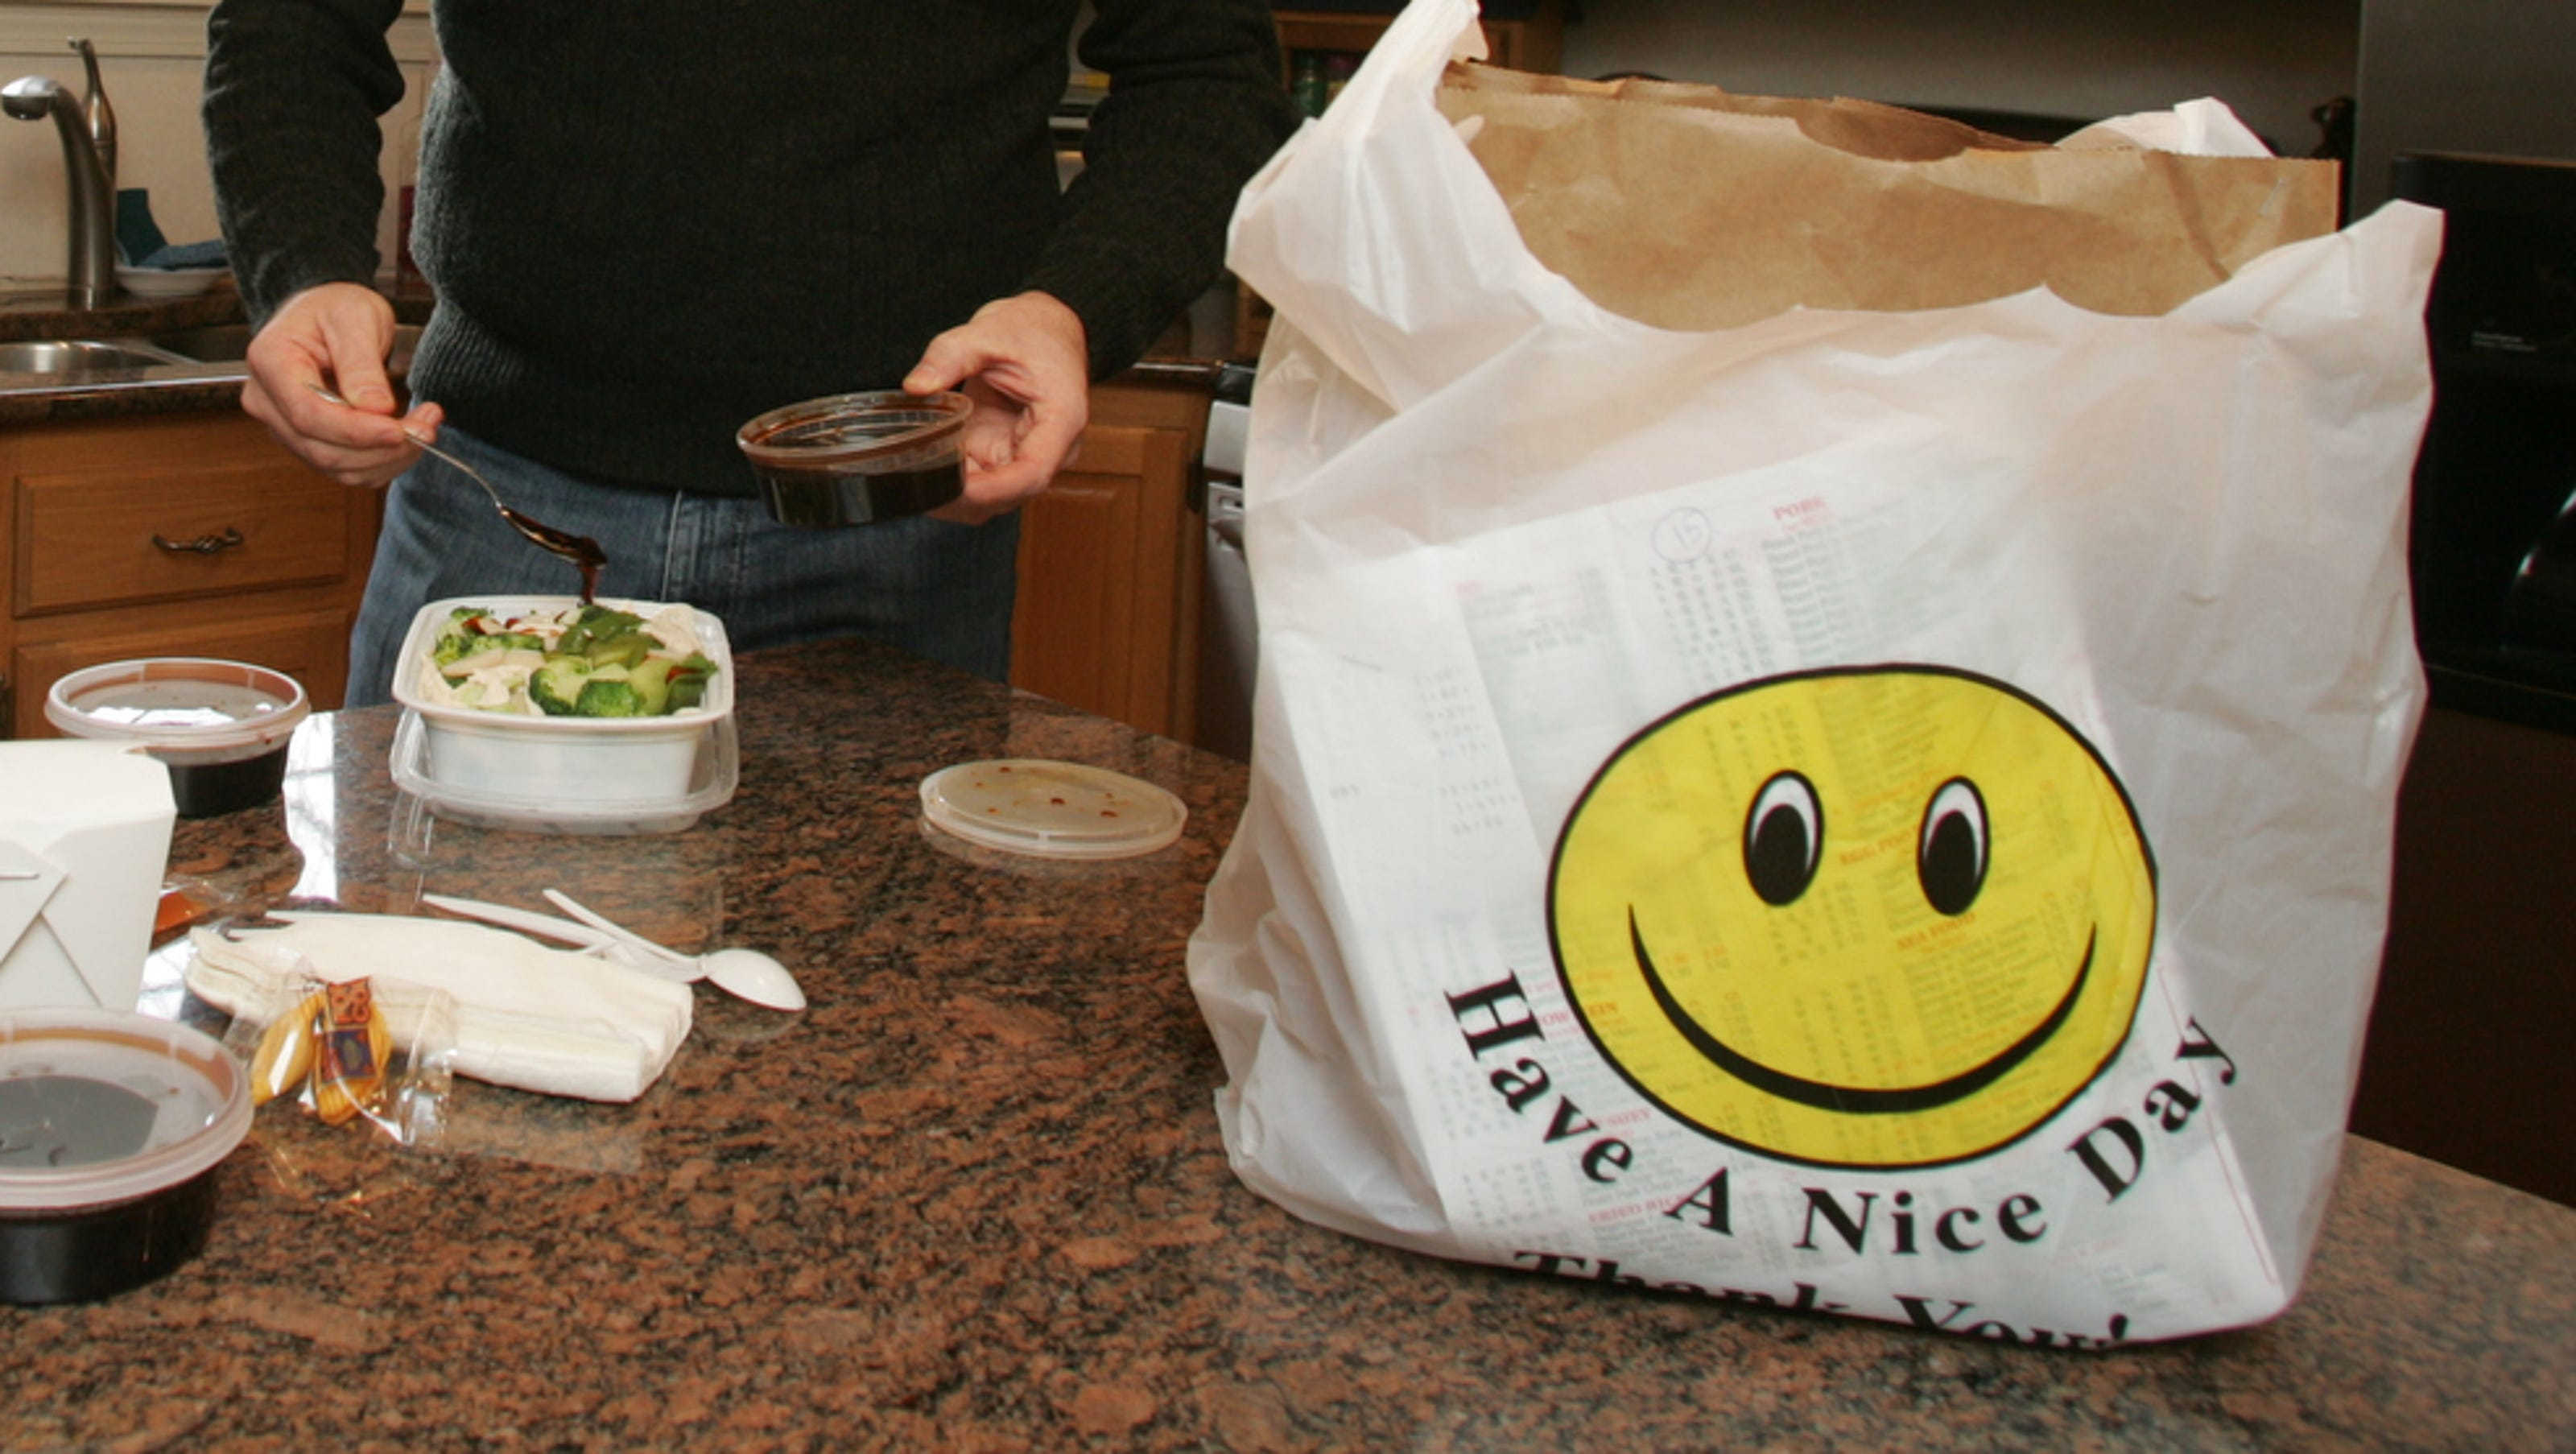 Ubereats Grubhub Amazon Prime Now How Much Should You Tip For